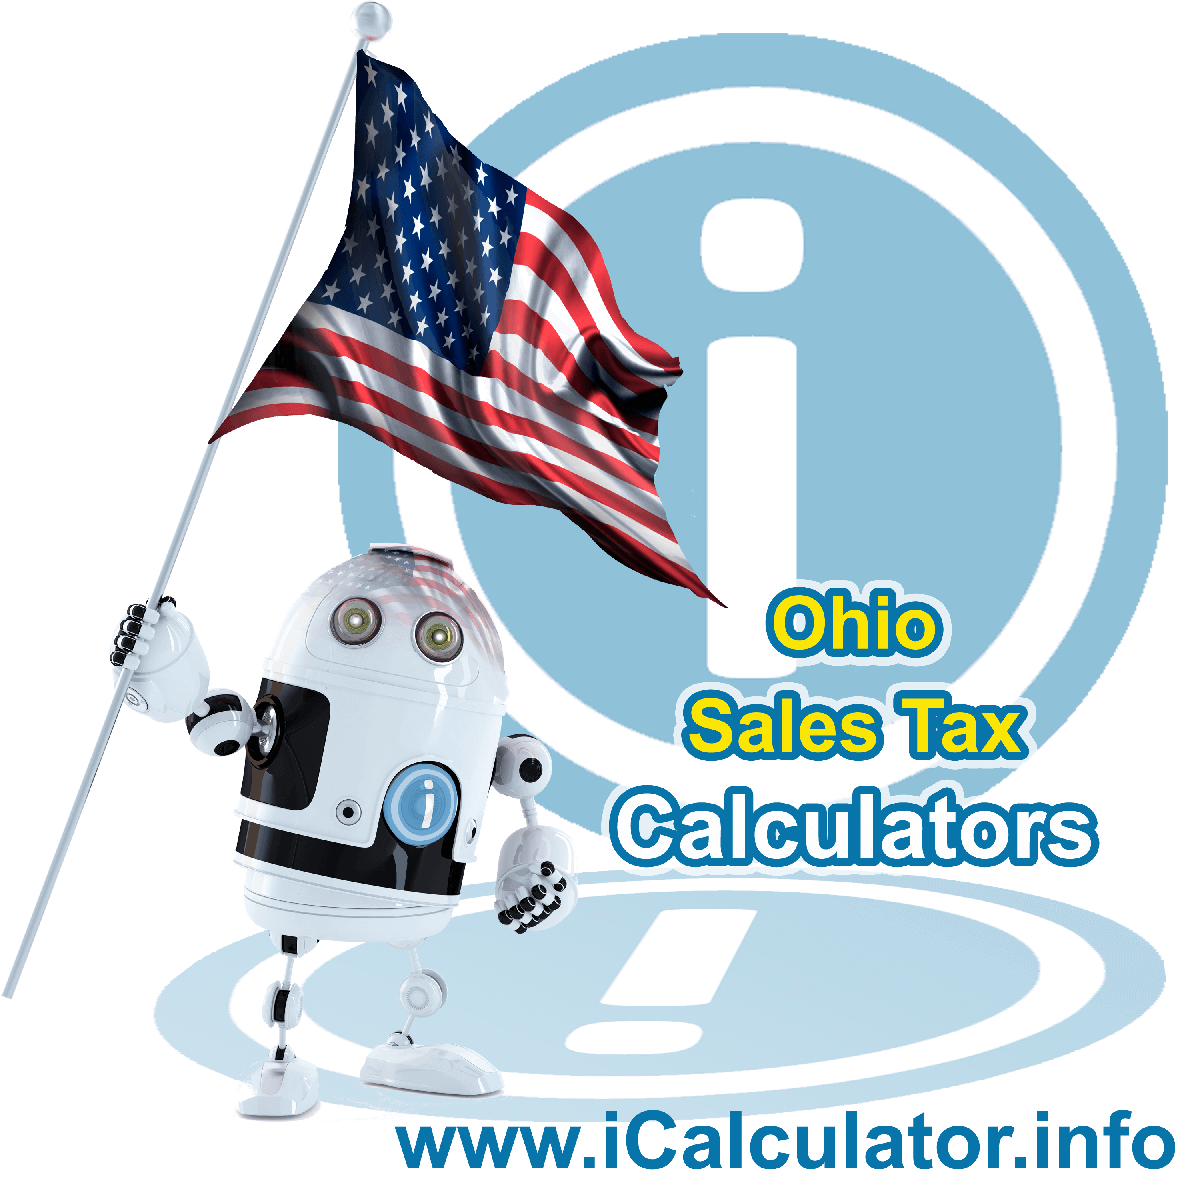 Ohio Sales Tax Comparison Calculator: This image illustrates a calculator robot comparing sales tax in Ohio manually using the Ohio Sales Tax Formula. You can use this information to compare Sales Tax manually or use the Ohio Sales Tax Comparison Calculator to calculate and compare Ohio sales tax online.